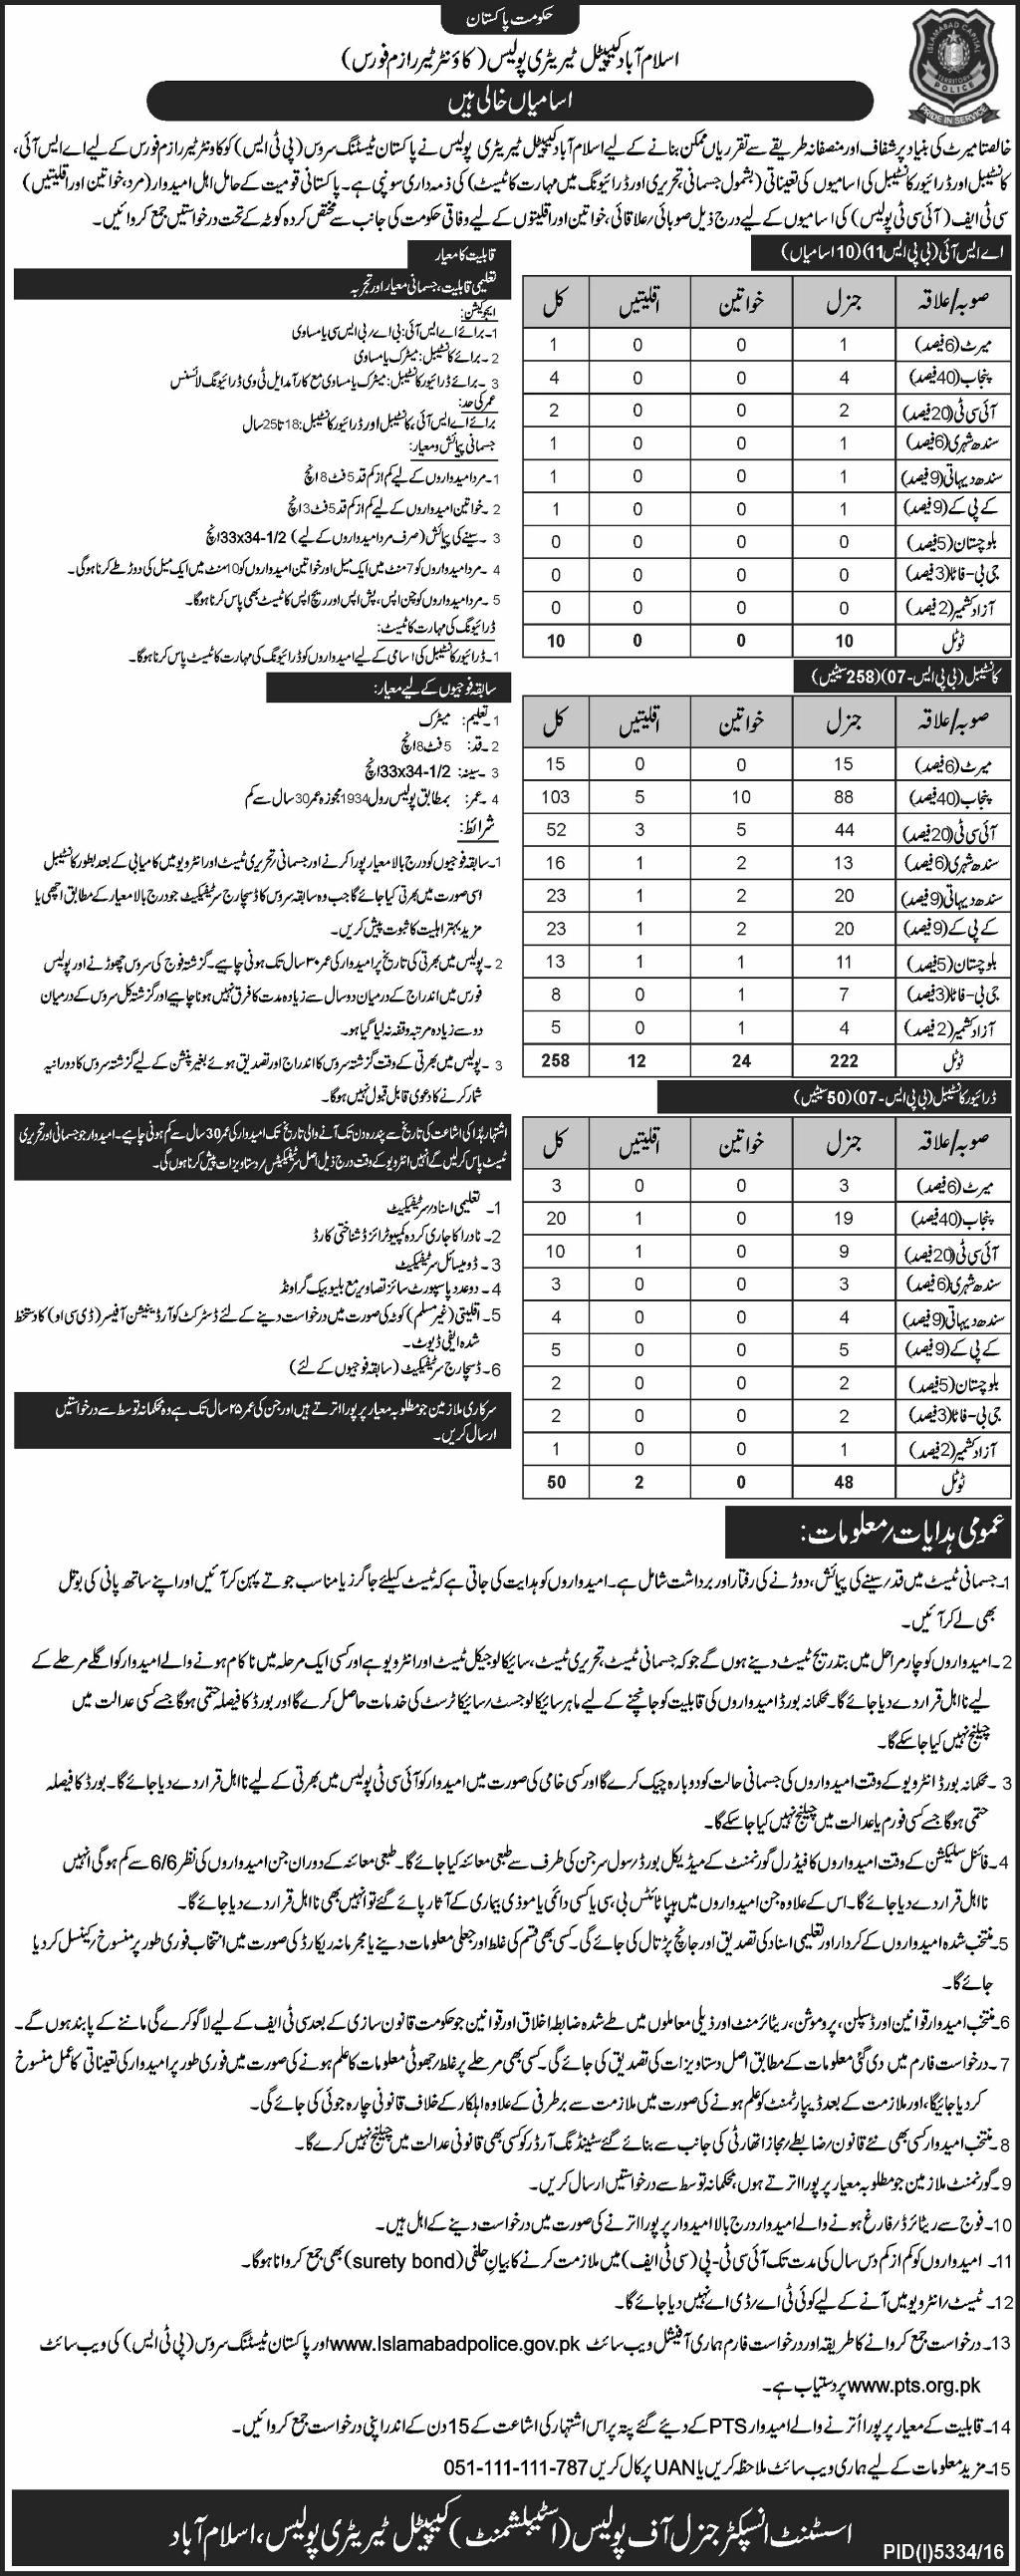 Islamabad Police ASI, Constable, Driver Jobs 2017 PTS Eligibility Last Date